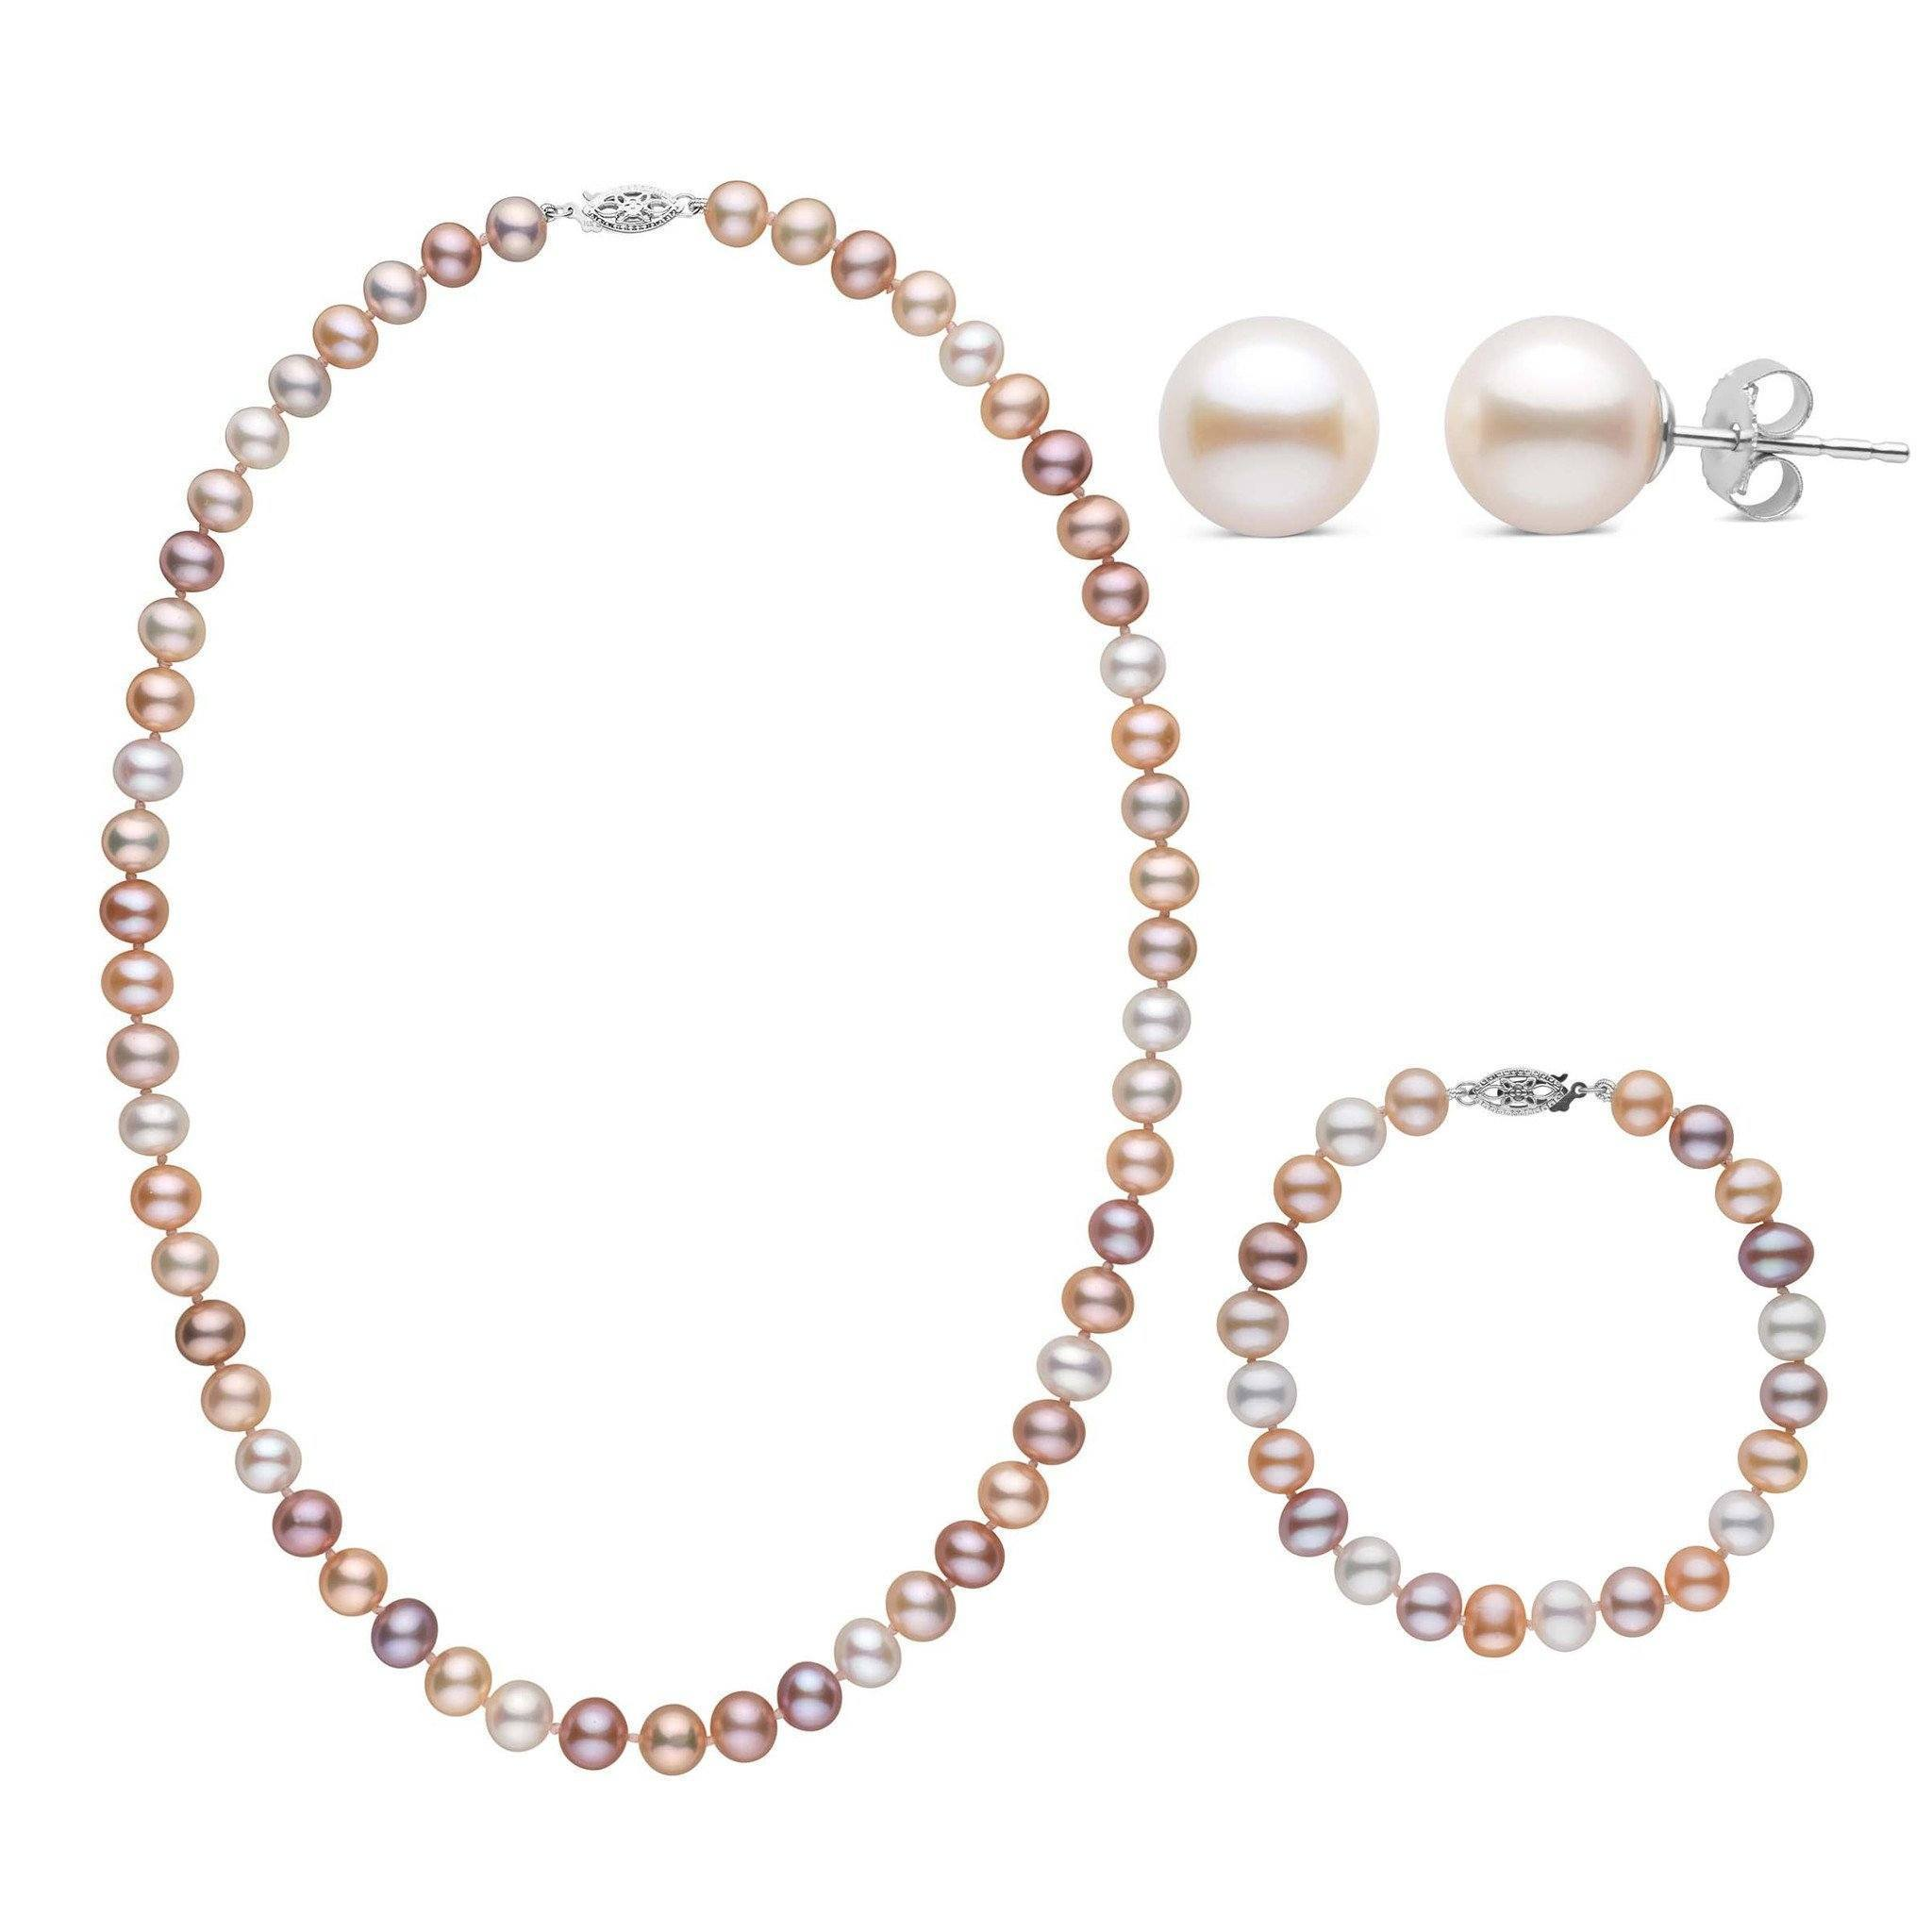 18 Inch 3 Piece Set of 7.5-8.0 mm AA+ Multicolor Freshwater Pearls